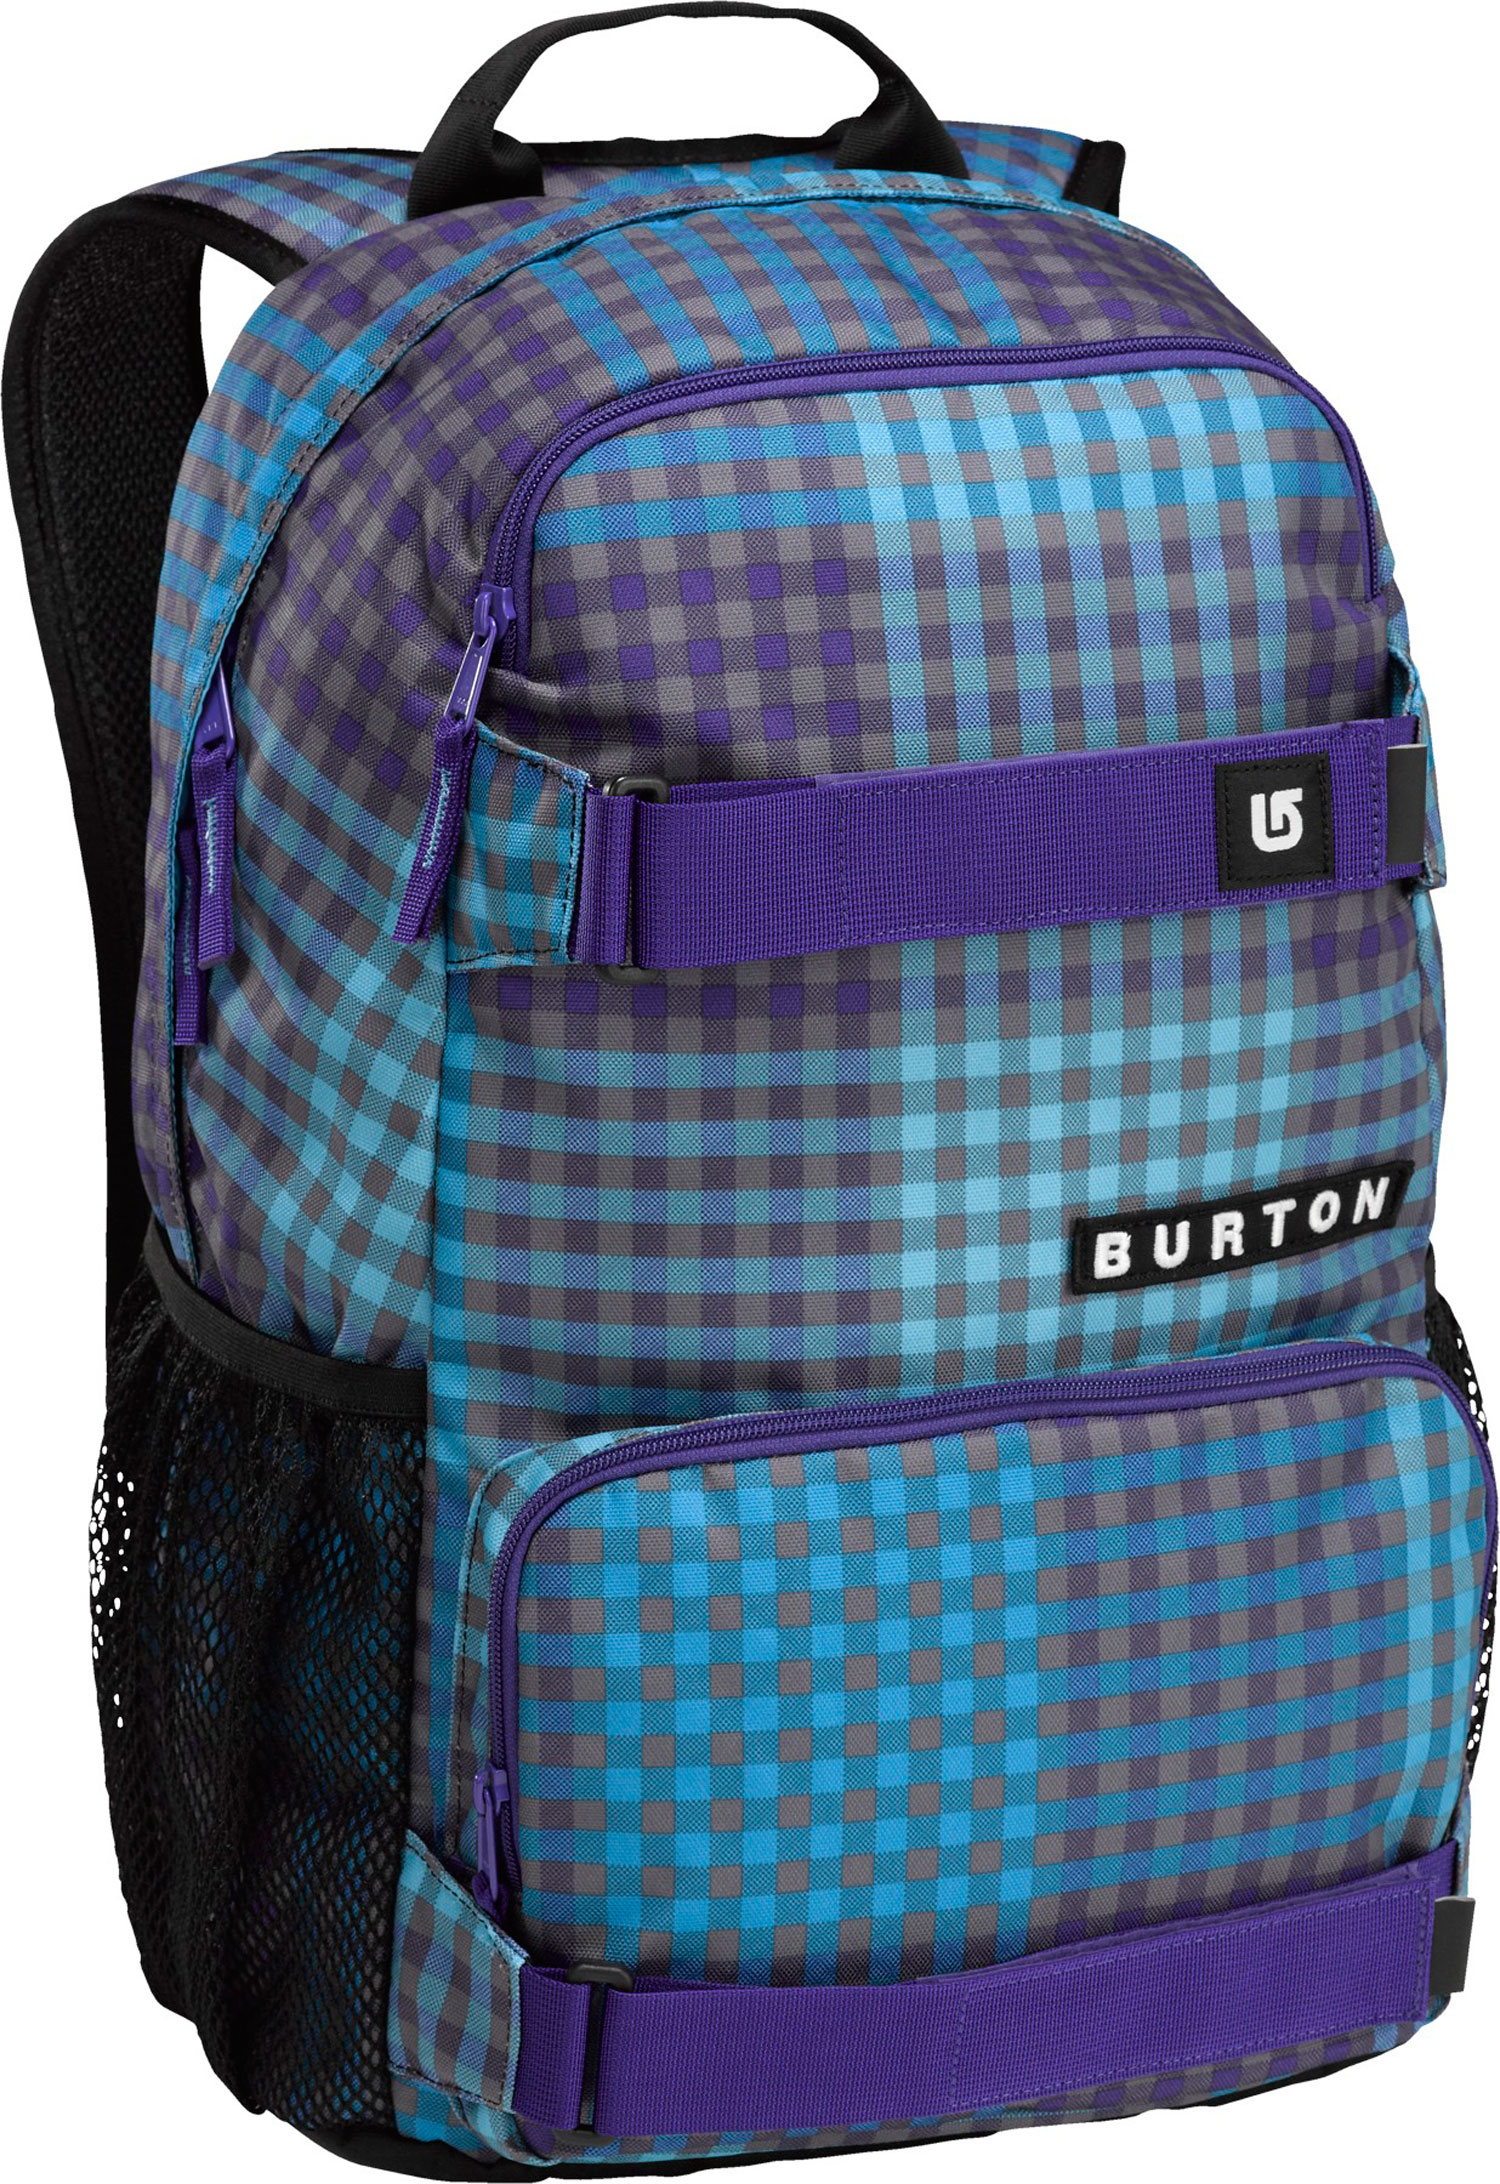 Snowboard Skate pack with 1,000 uses-the best deal going. External straps for a deck or other bulky gear, mesh water bottle pockets on the side for easy access to hydration and other necessities.Key Features of the Burton Treble Yell Backpack: Fabrication: 600D Polyester / 300D Polyester Dobby Vertical Skate carry Magazine / Laptop Sleeve cush Ergonomic Shoulder Harness Mesh water Bottle Pockets [18.5in x 12in x 7in] [47cm x 31cm x 17cm] 21L - $25.95